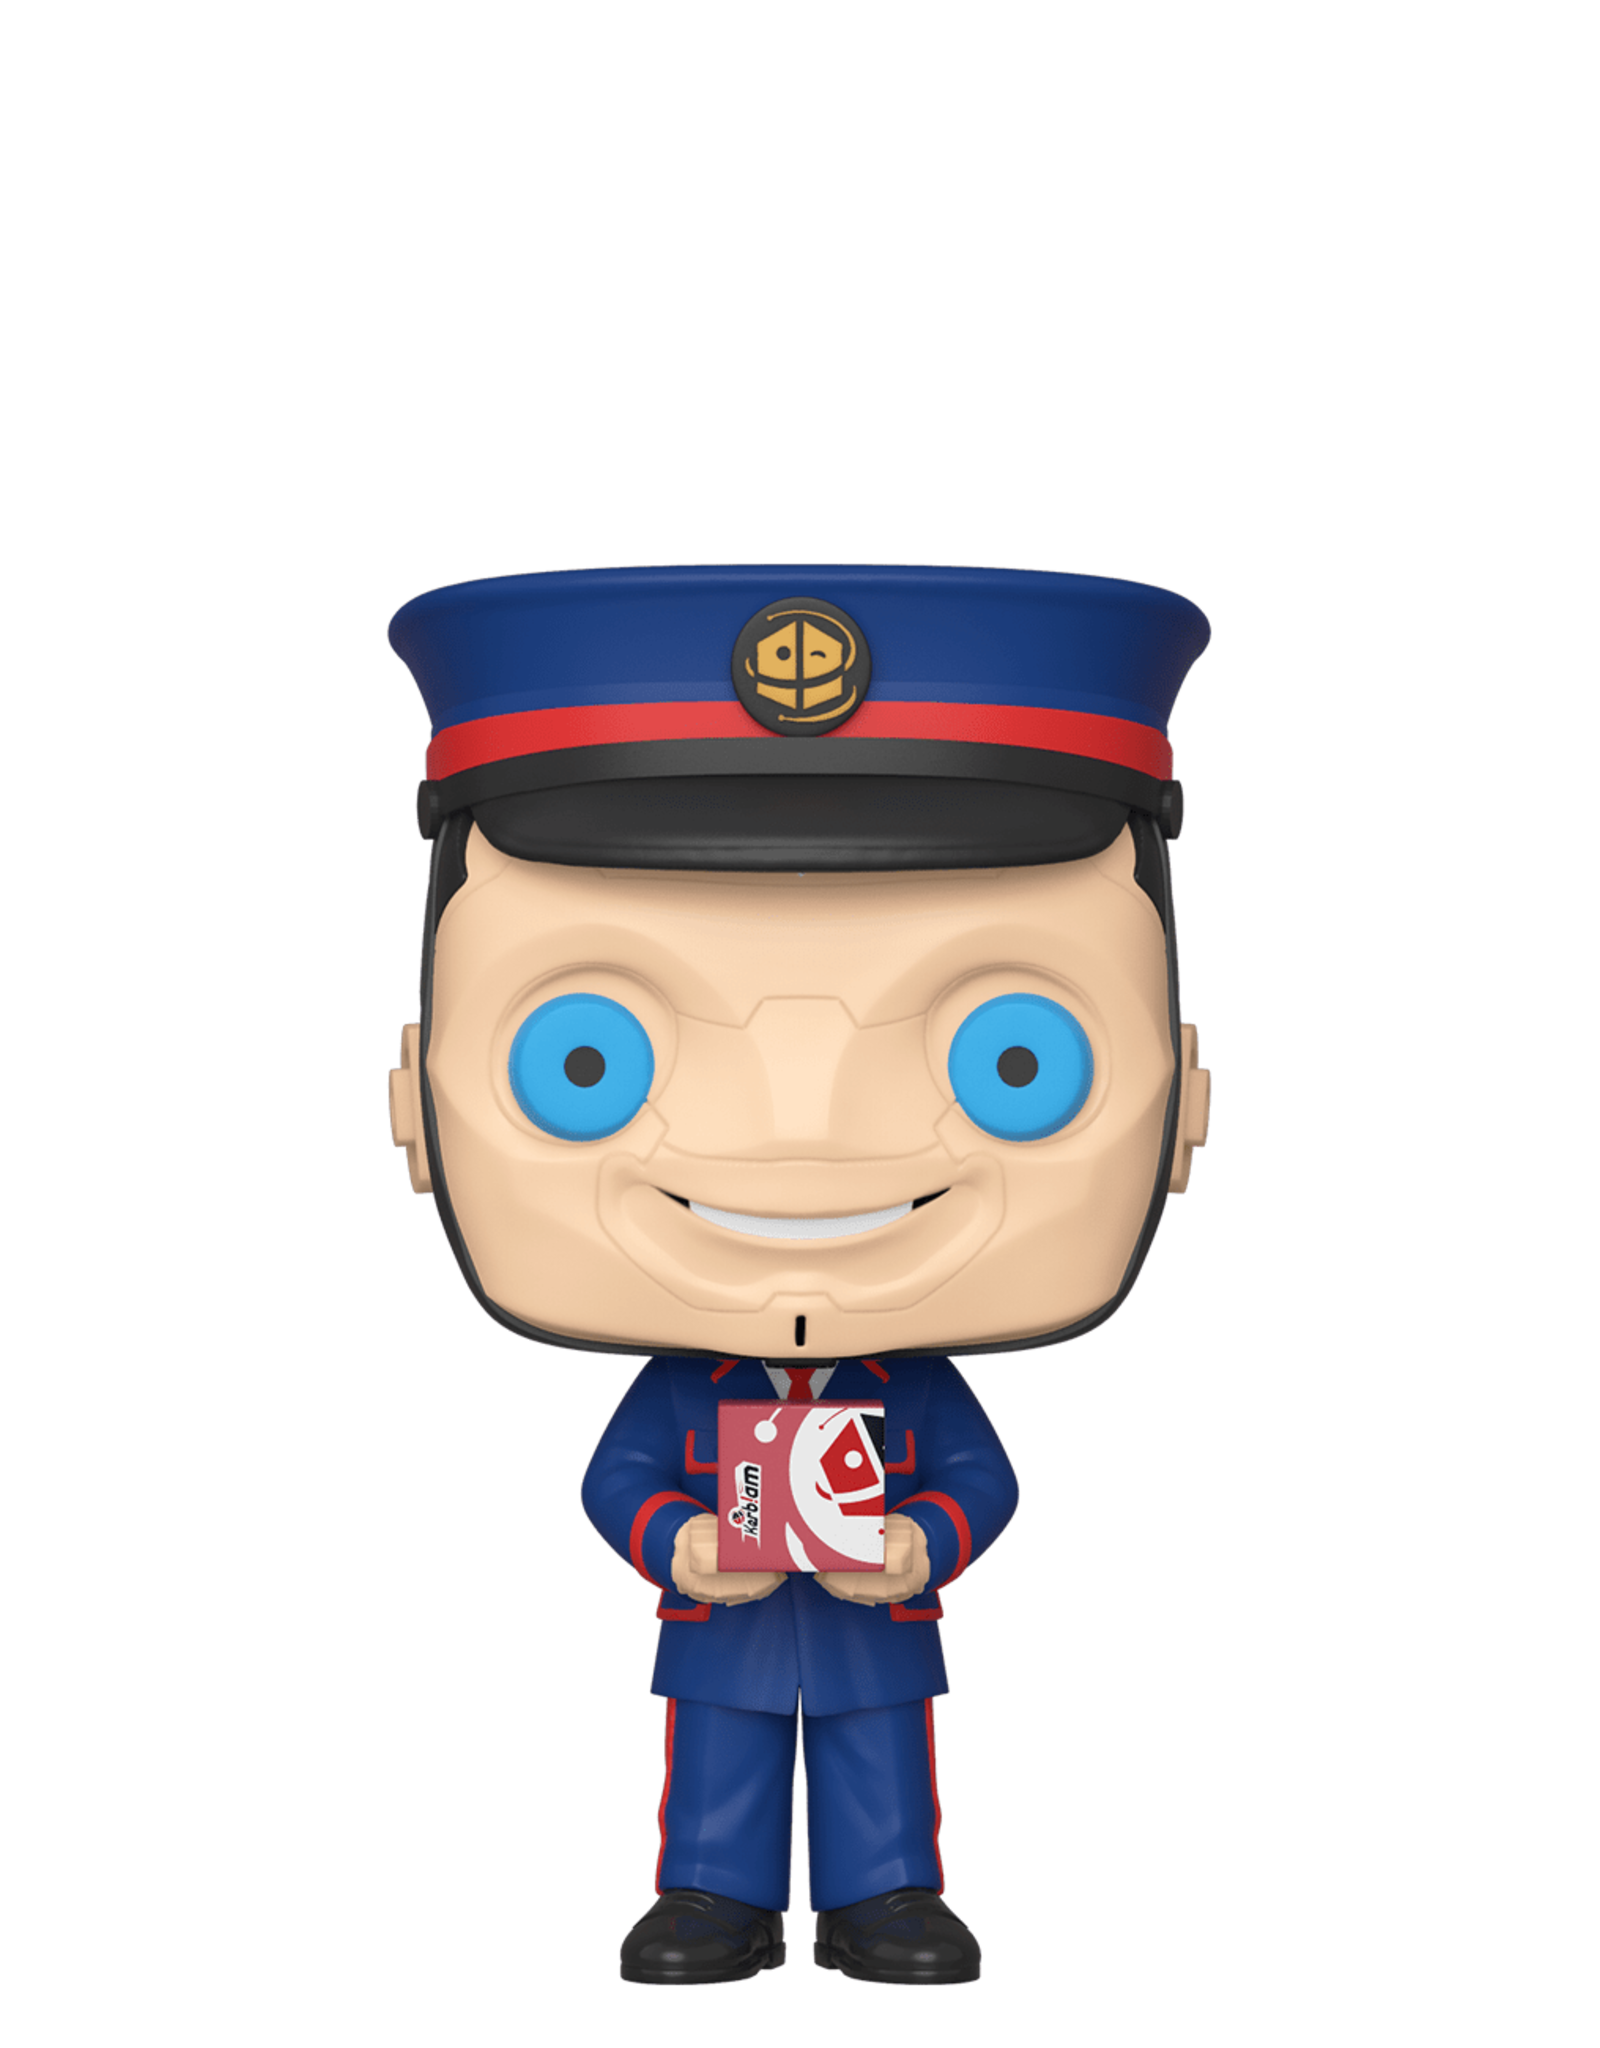 FUNKO POP DOCTOR WHO KERBLAM MAN VINYL FIG